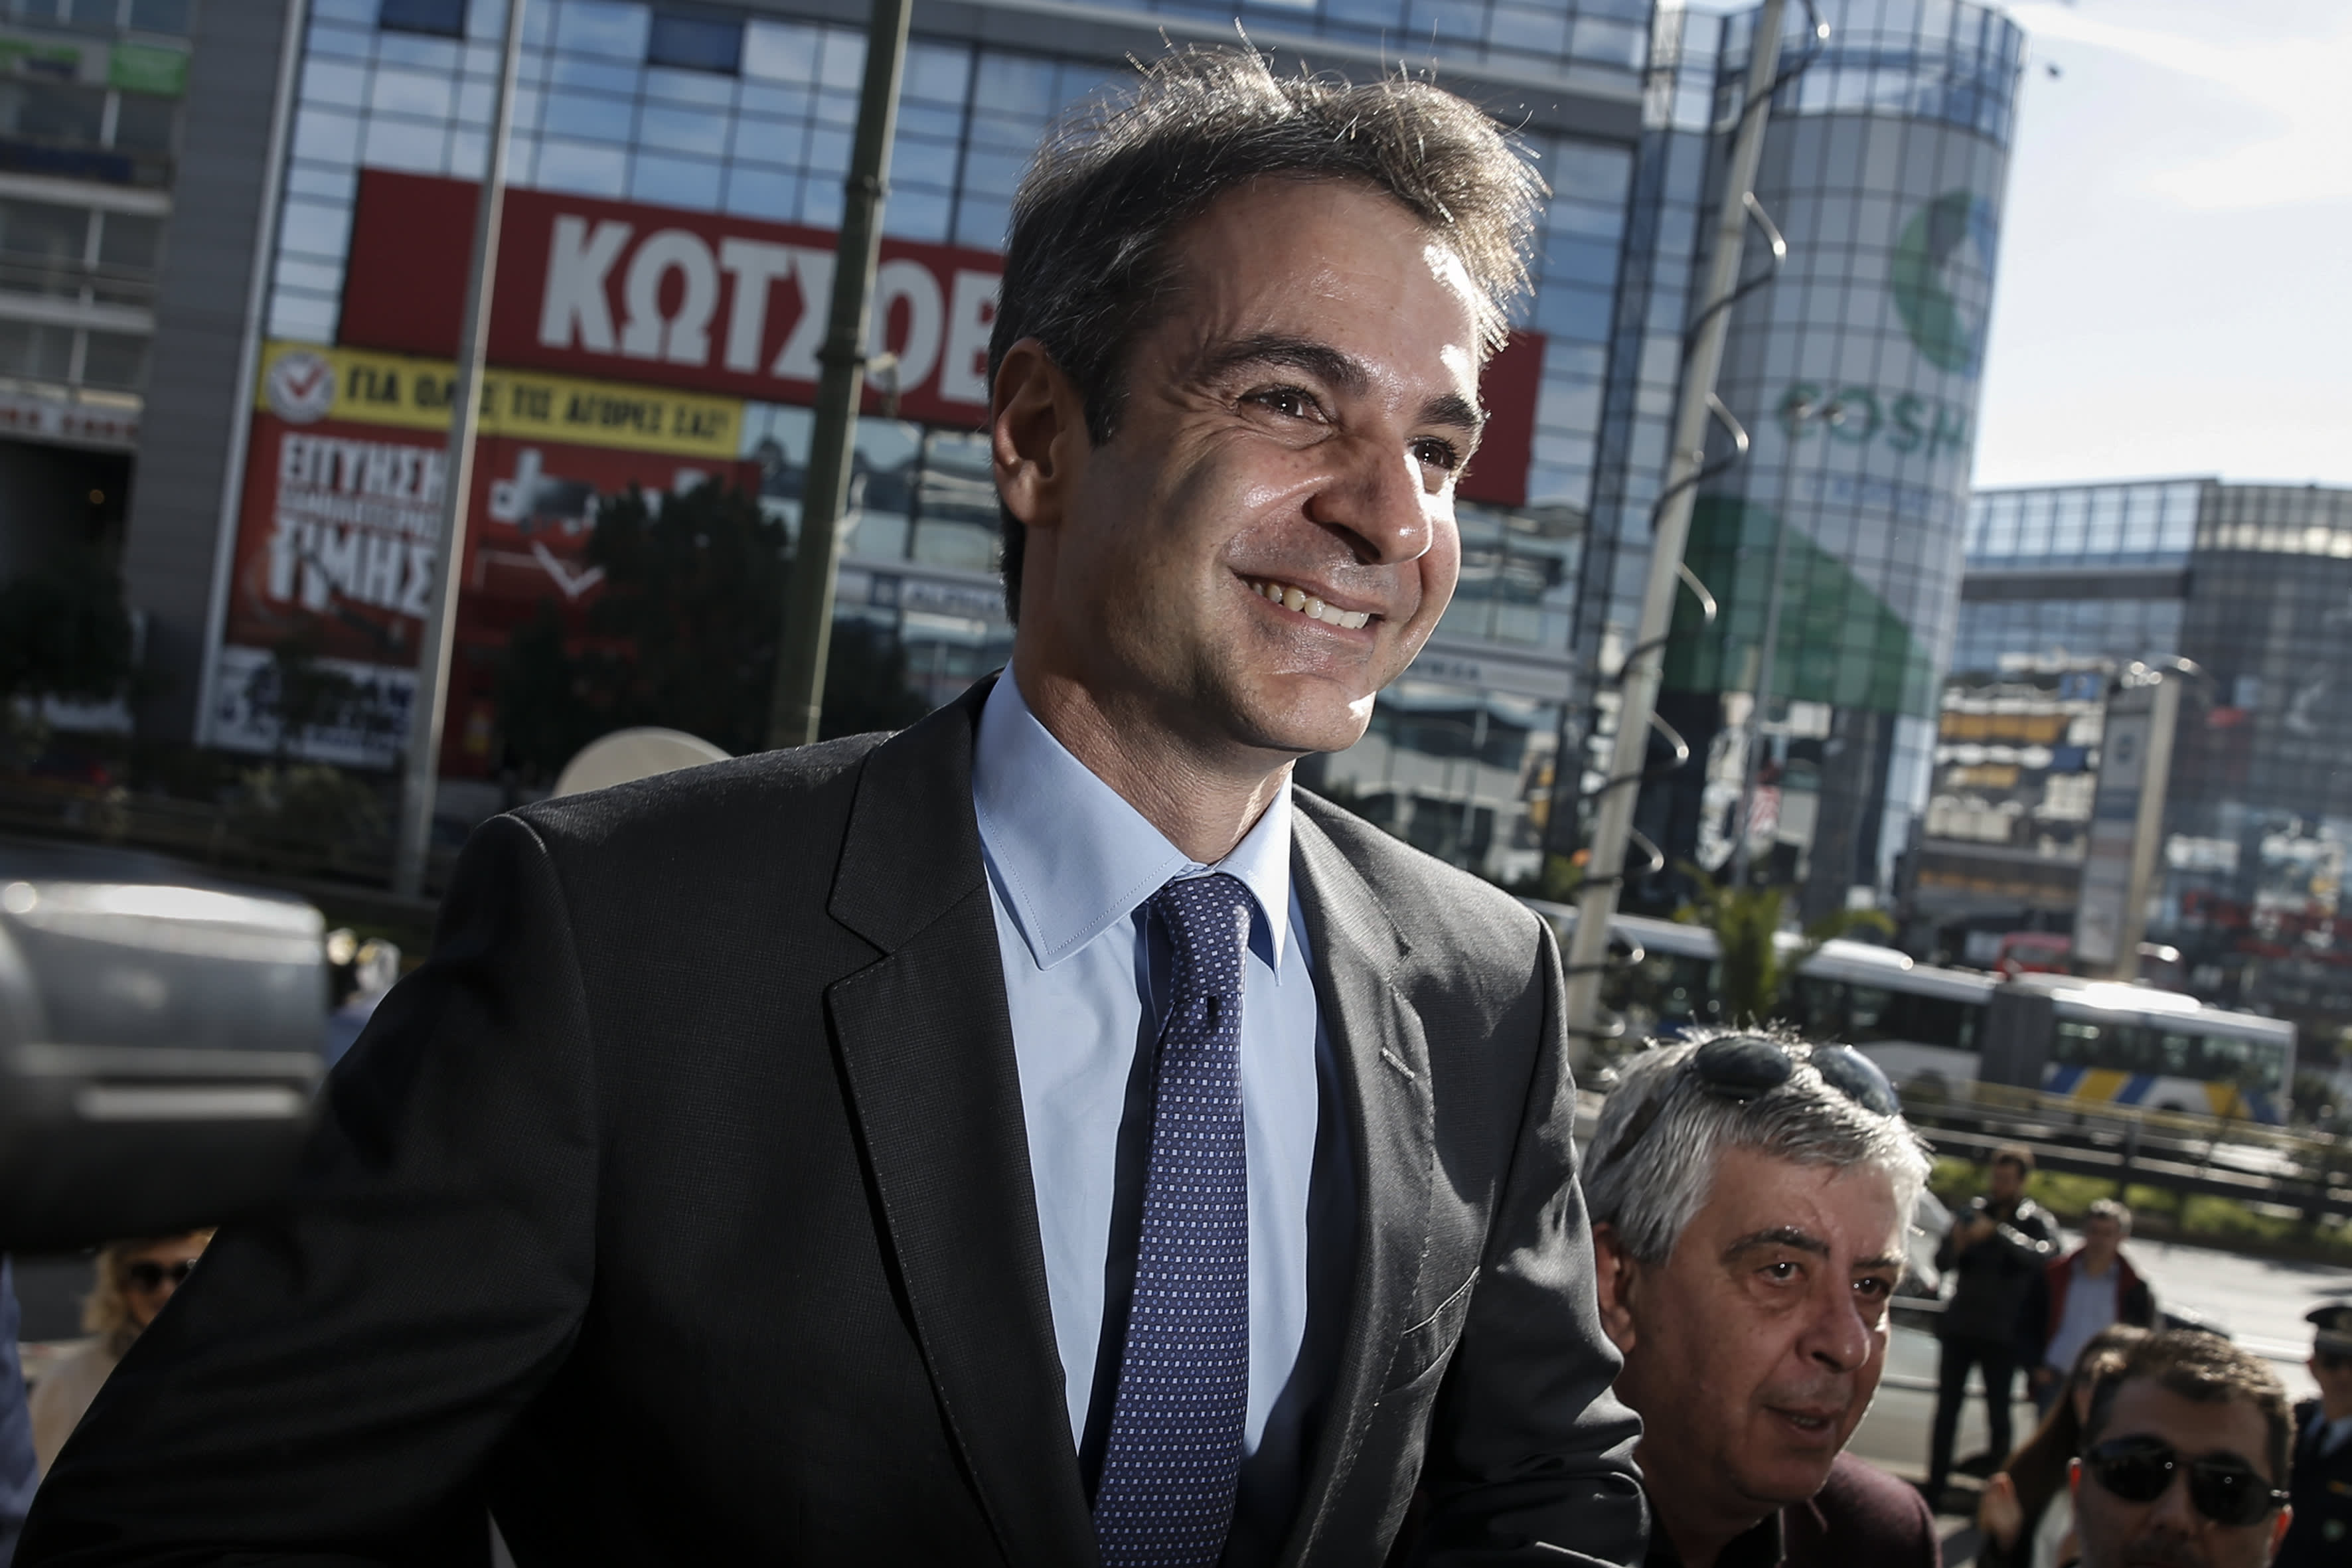 Greece's opposition leader promises lower taxes and 'aggressive' growth as election nears